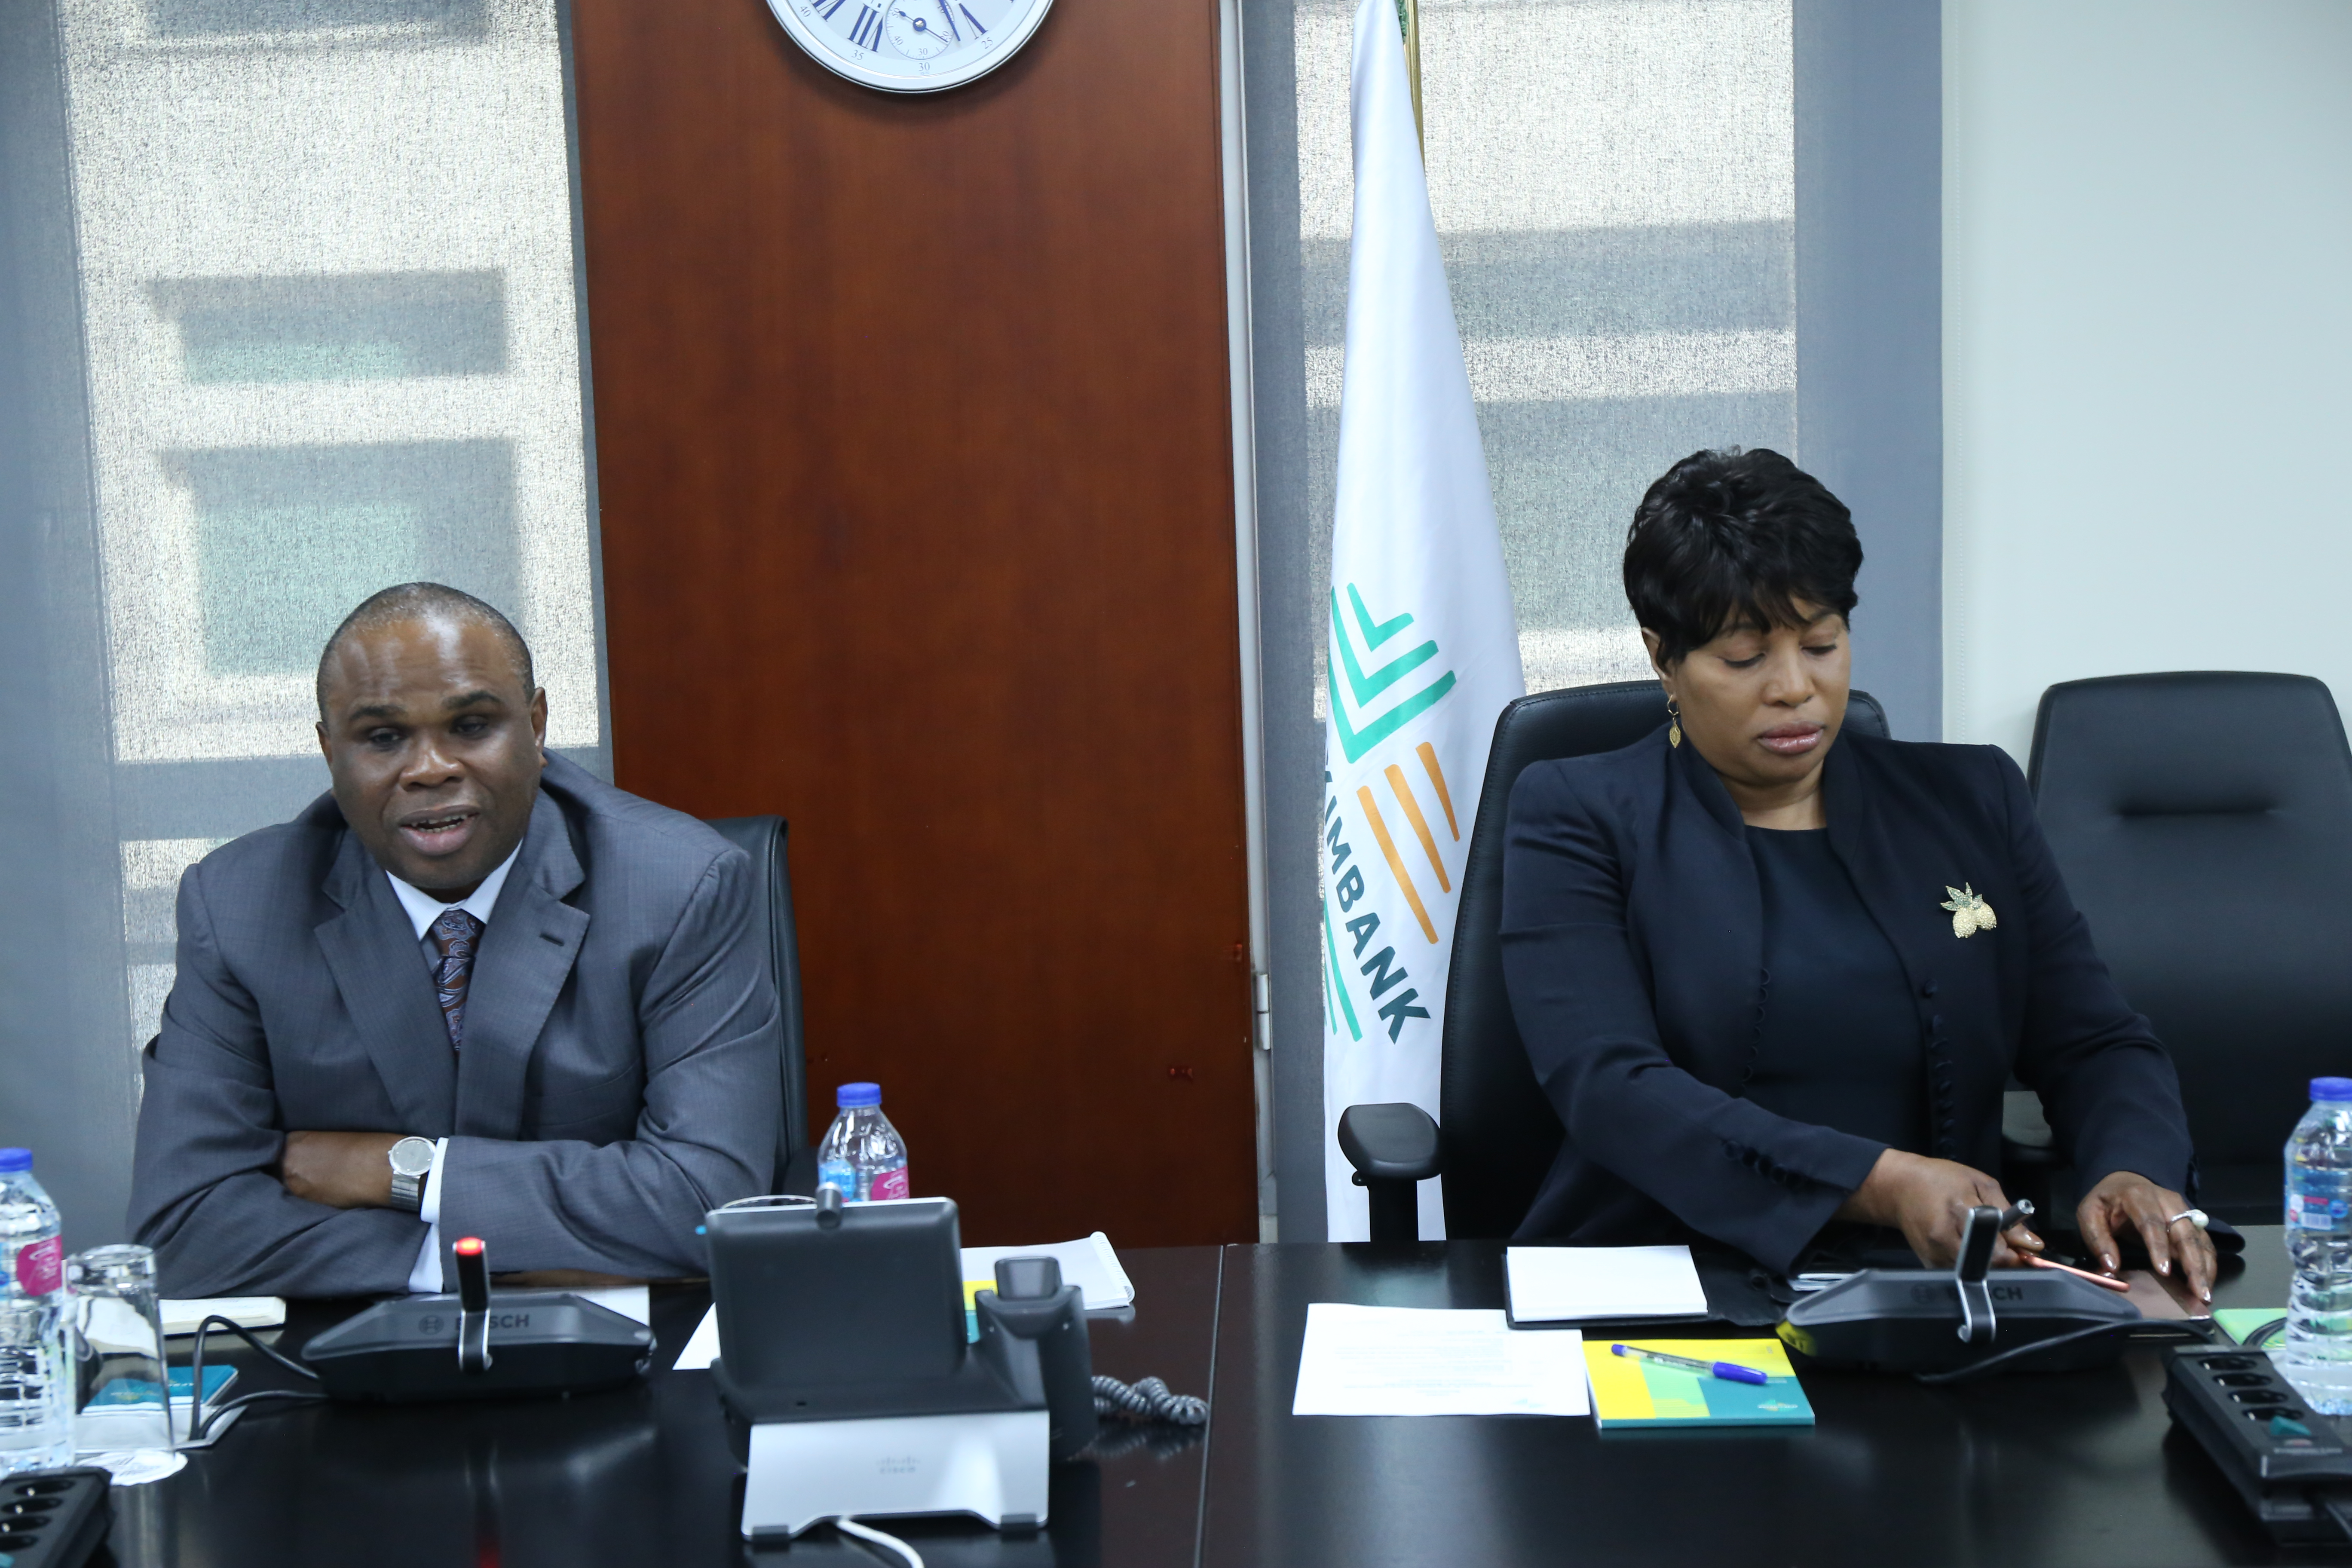 Afreximbank President Prof. Benedict Oramah (L), joined by Gwen Mwaba, Director. Trade Finance, Afreximbank, delivers opening remarks during the meeting with the Kwazulu-Natal delegation.